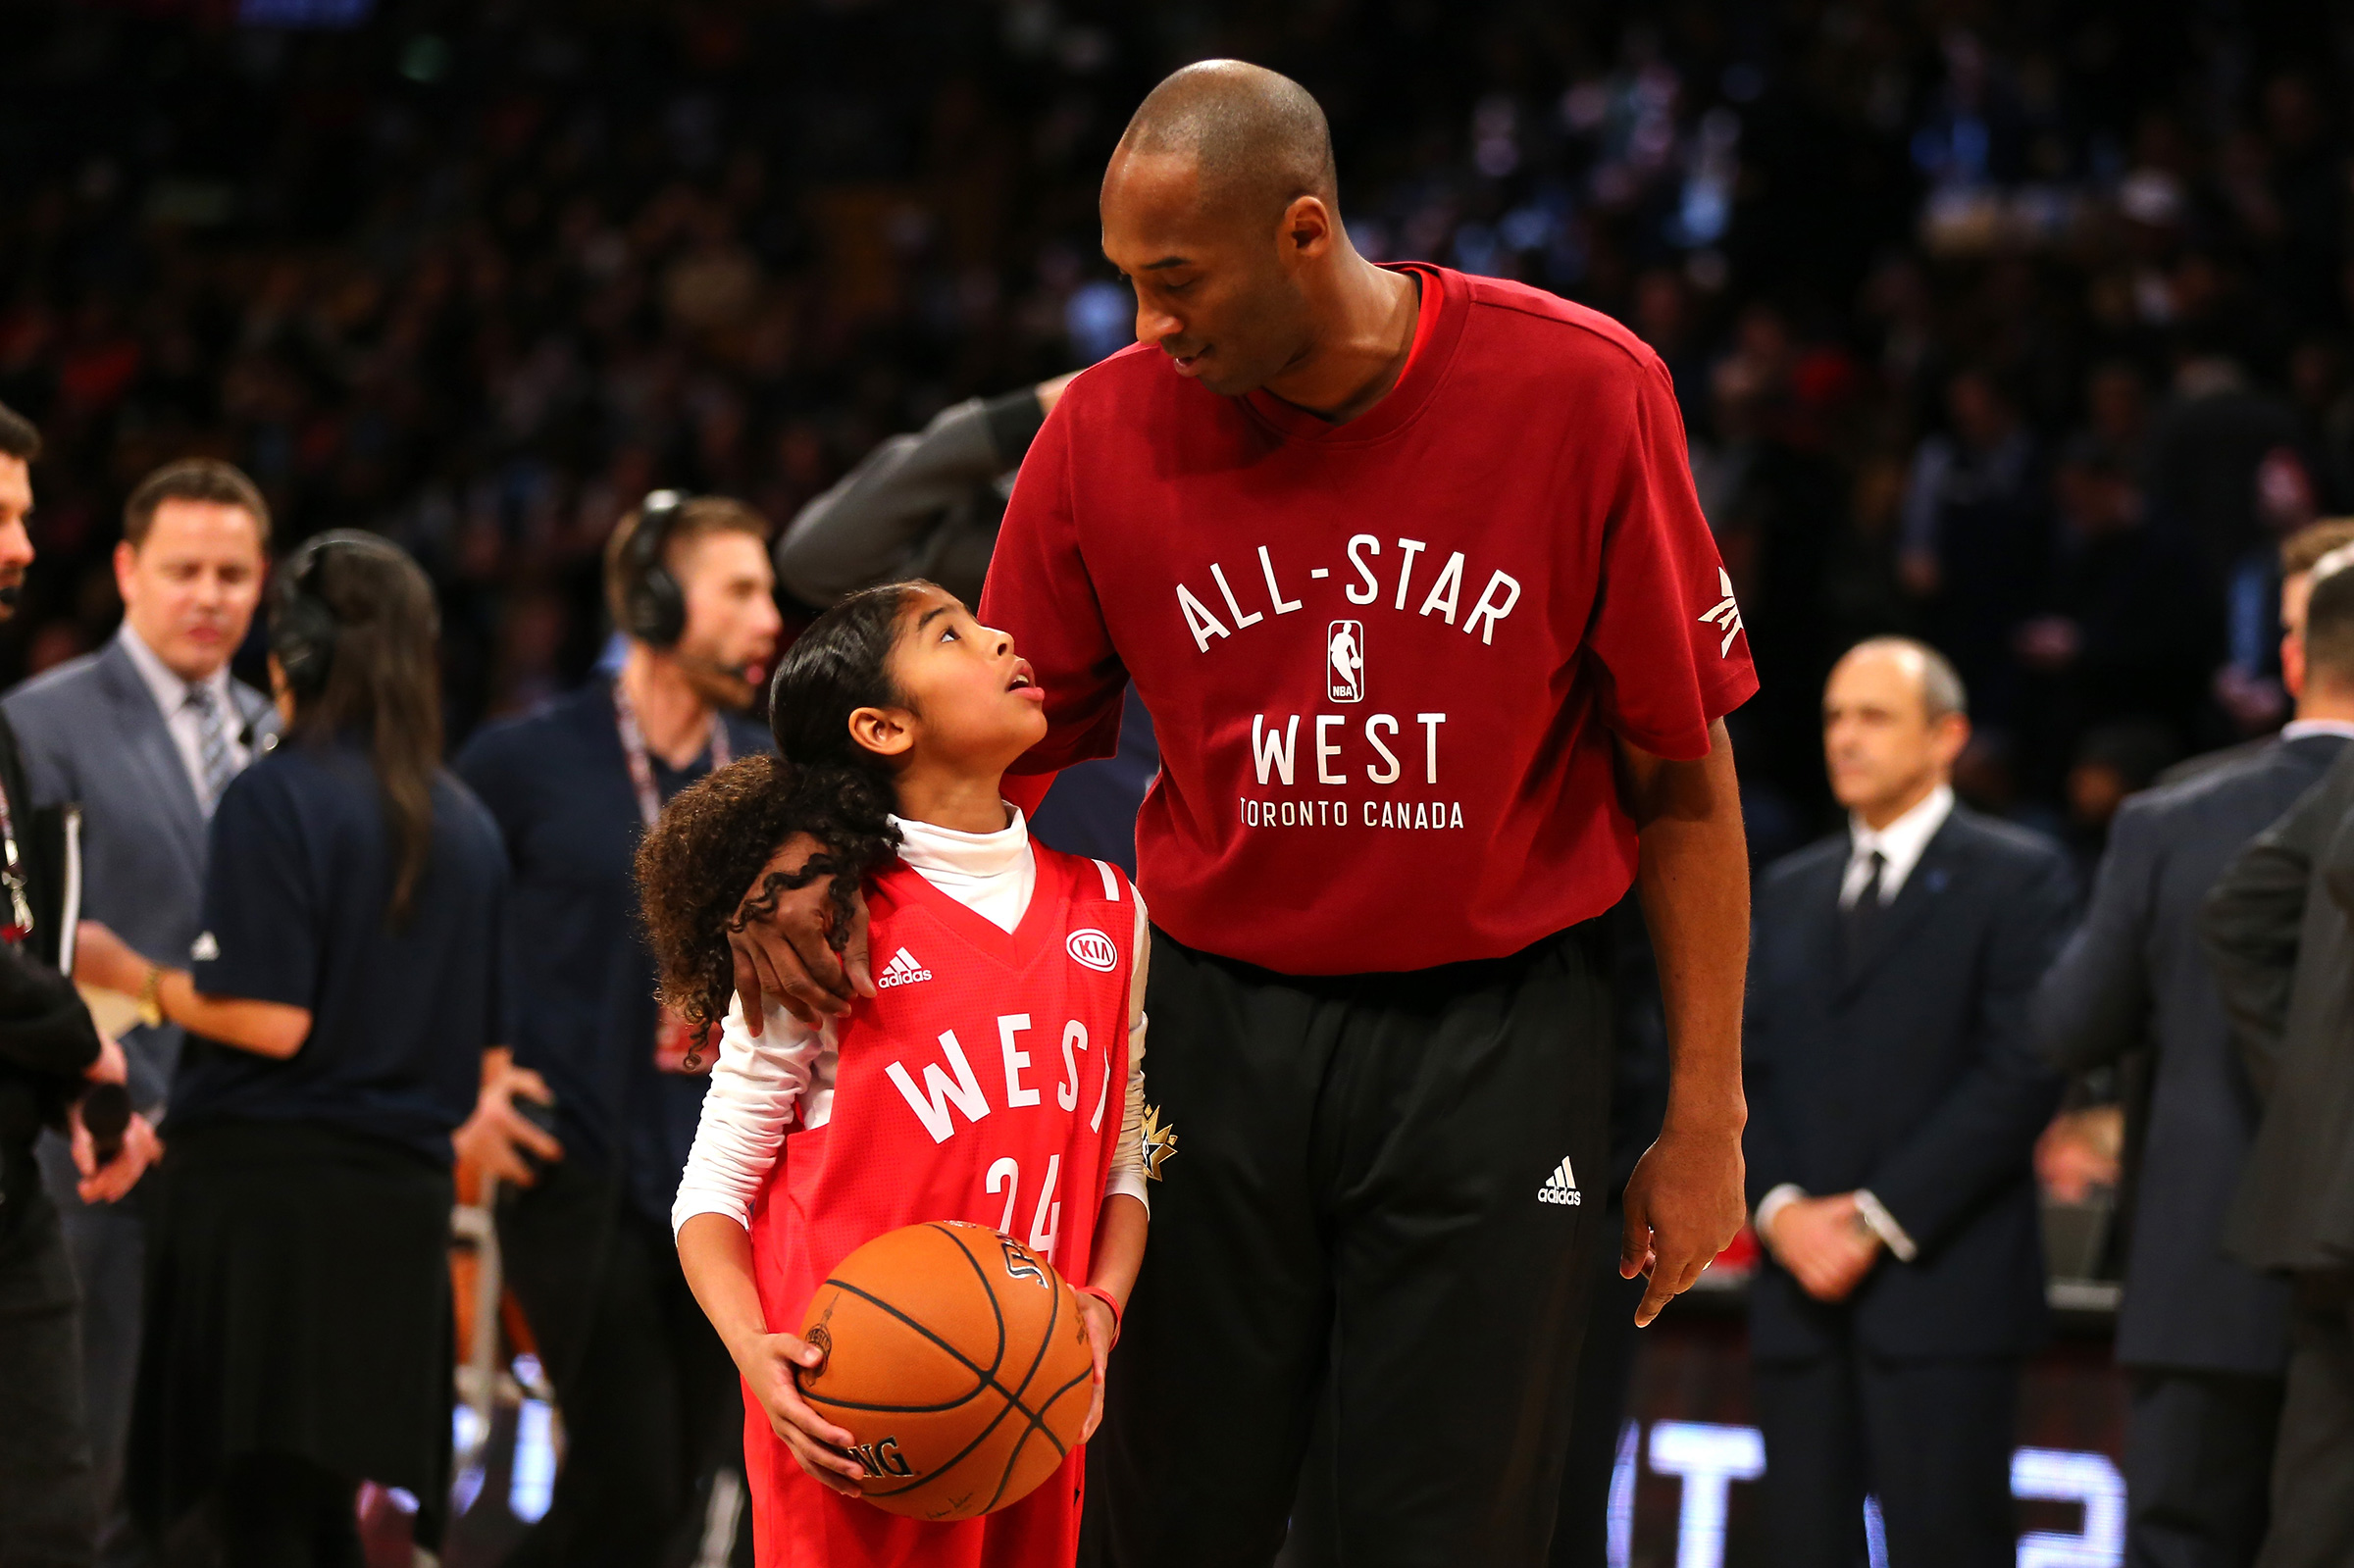 Kobe Bryant warms up with daughter Gianna Bryant during the NBA All-Star Game on Feb. 14, 2016.